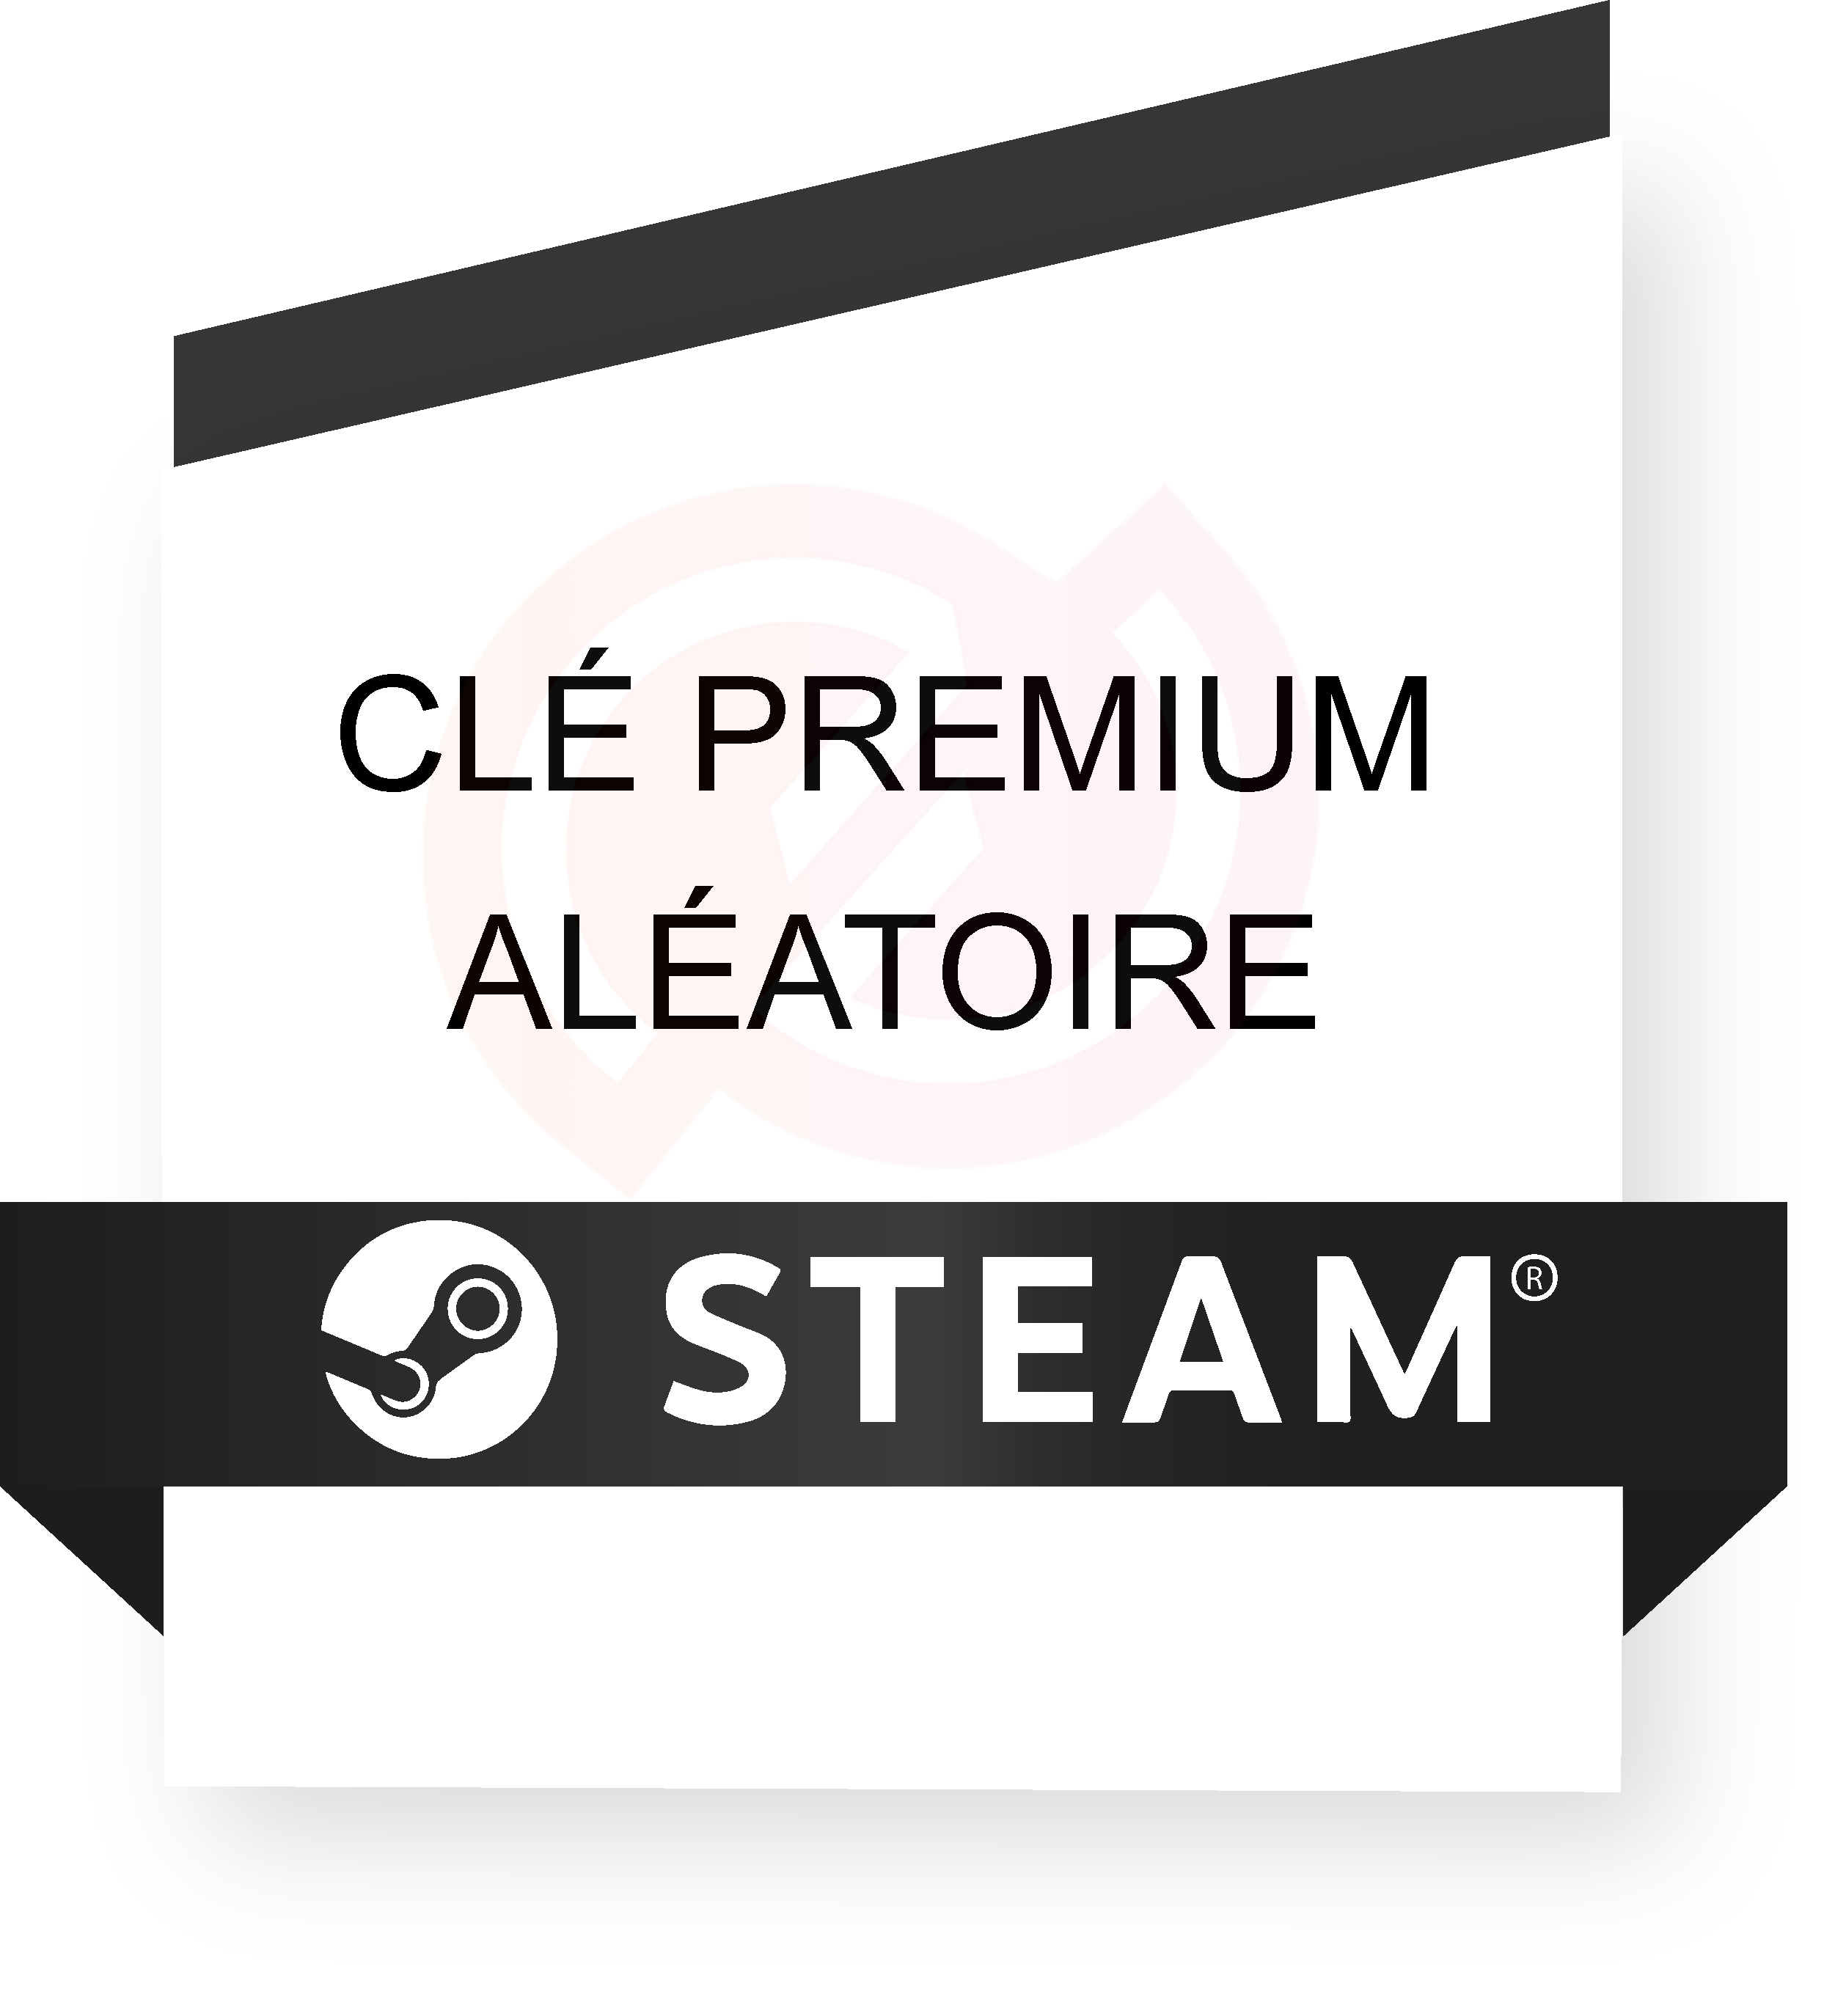 cle-steam-aleatoire-premium